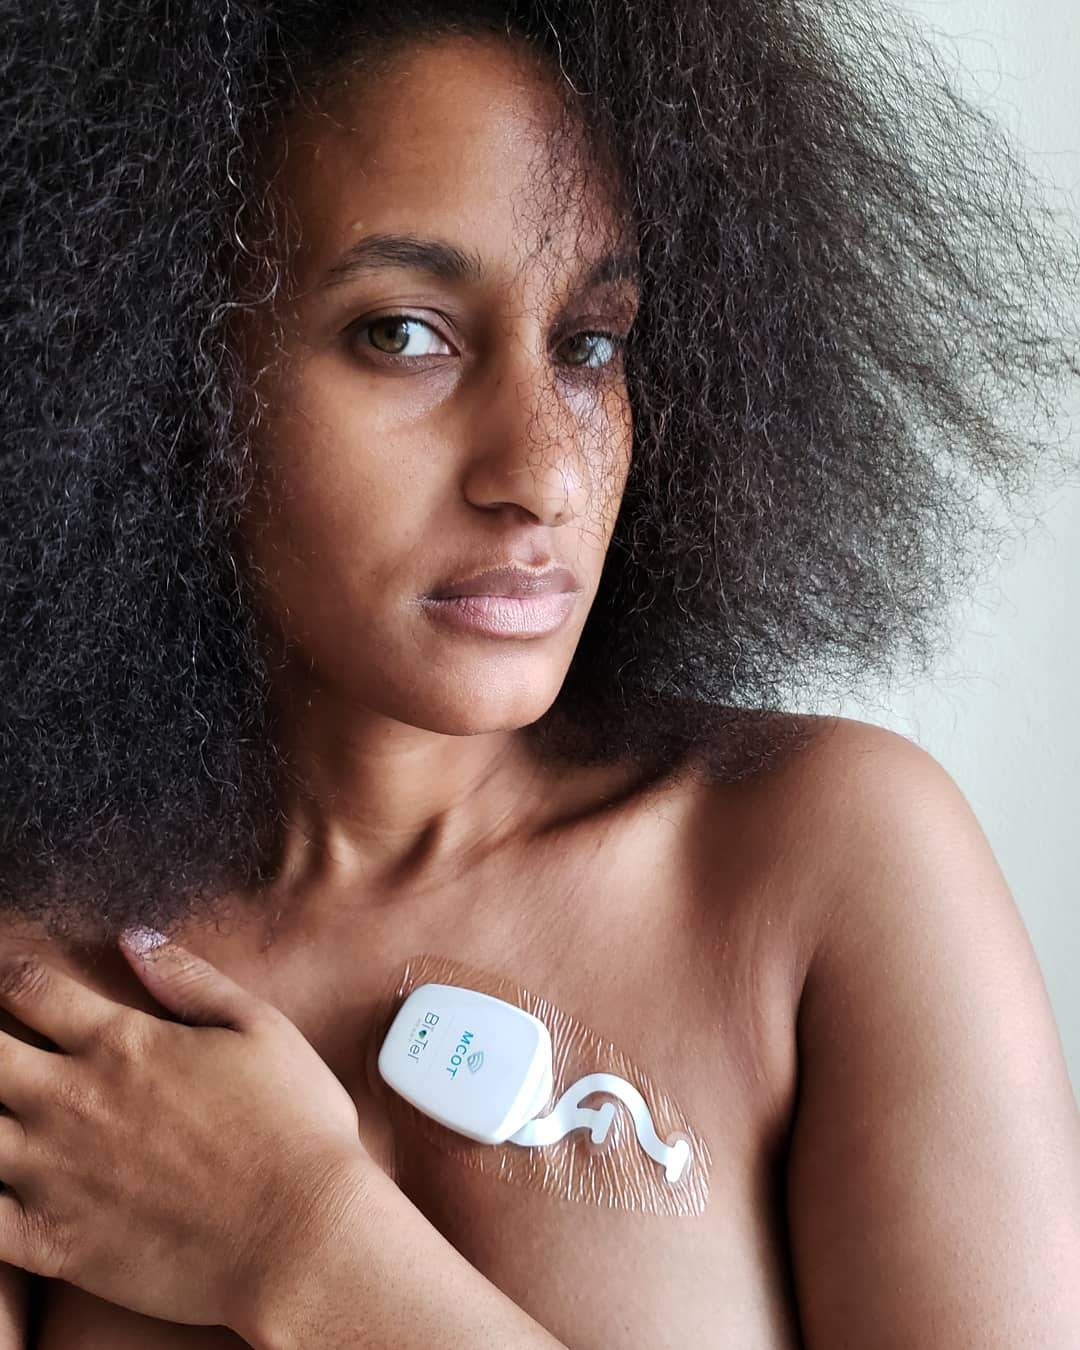 Heart Breaker    Dr. Akilah Cadet get's personal and shares her current heart journey. Read her experience and what she has learned   here   .